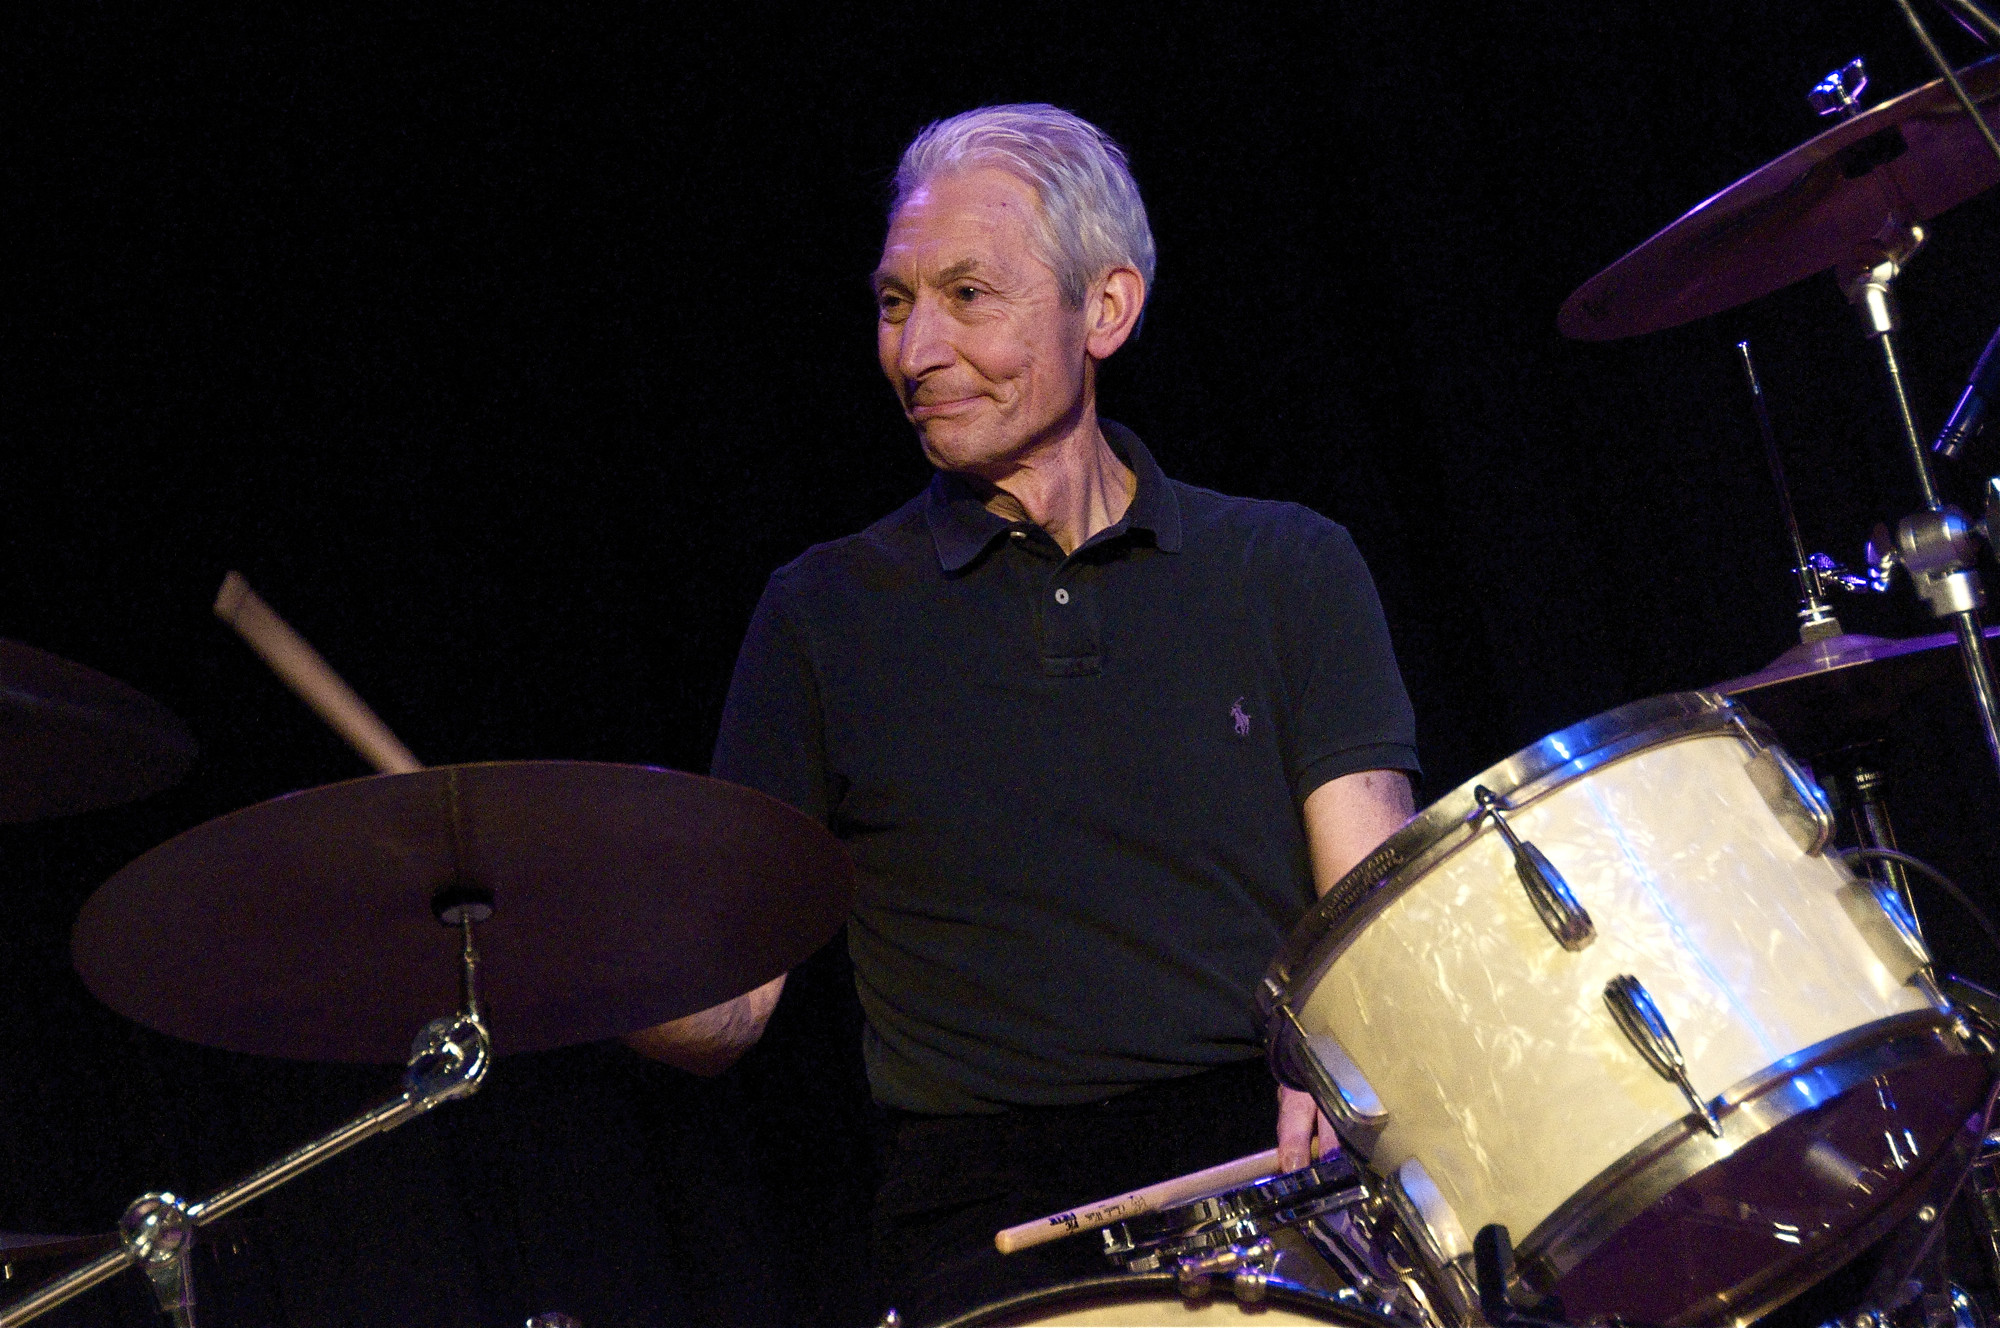 Charlie Watts, bateria dels Rolling Stone